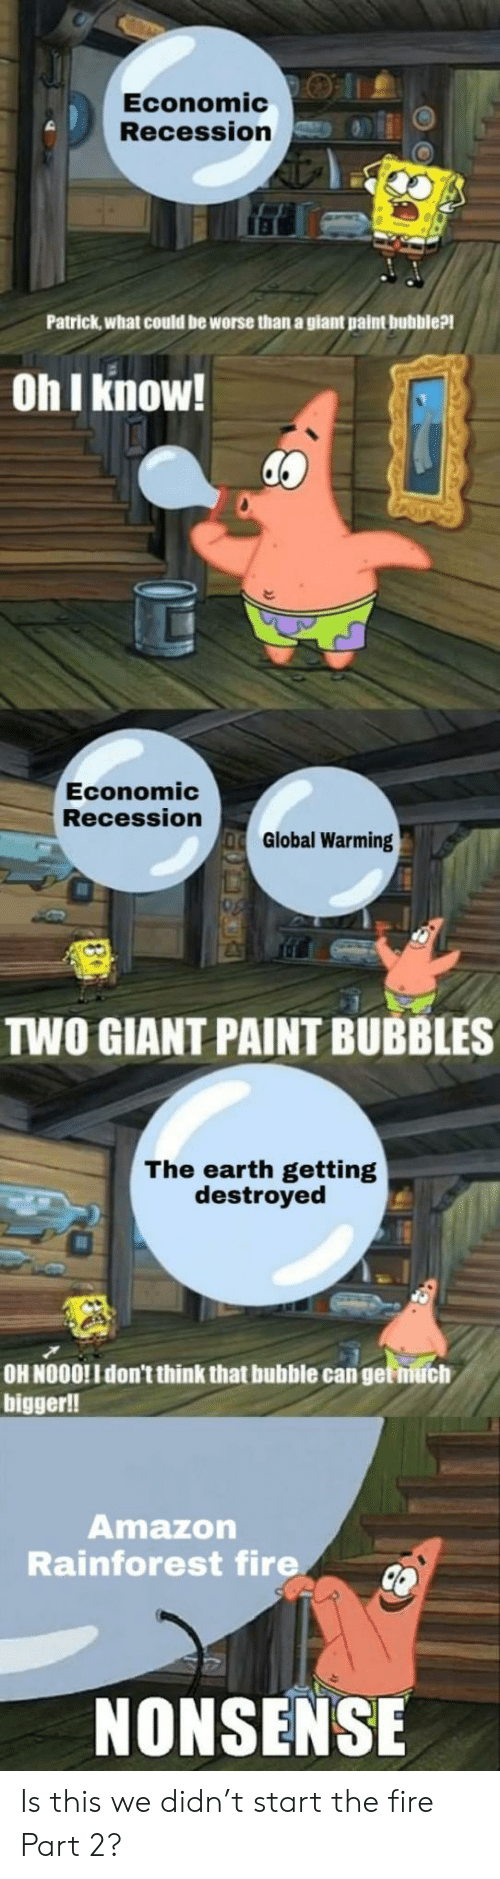 nooo: Economic:O |1.  Recession  Patrick,what could be worse than a giant paint bubble?!  Oh I know!  Economic  Recession  Global Warming  TWO GIANT PAINT BUBBLES  The earth getting  destroyed  OH NOOO!I don't think that bubble can get niuch  bigger!!  Amazon  Rainforest fire  NONSENSE Is this we didn't start the fire Part 2?